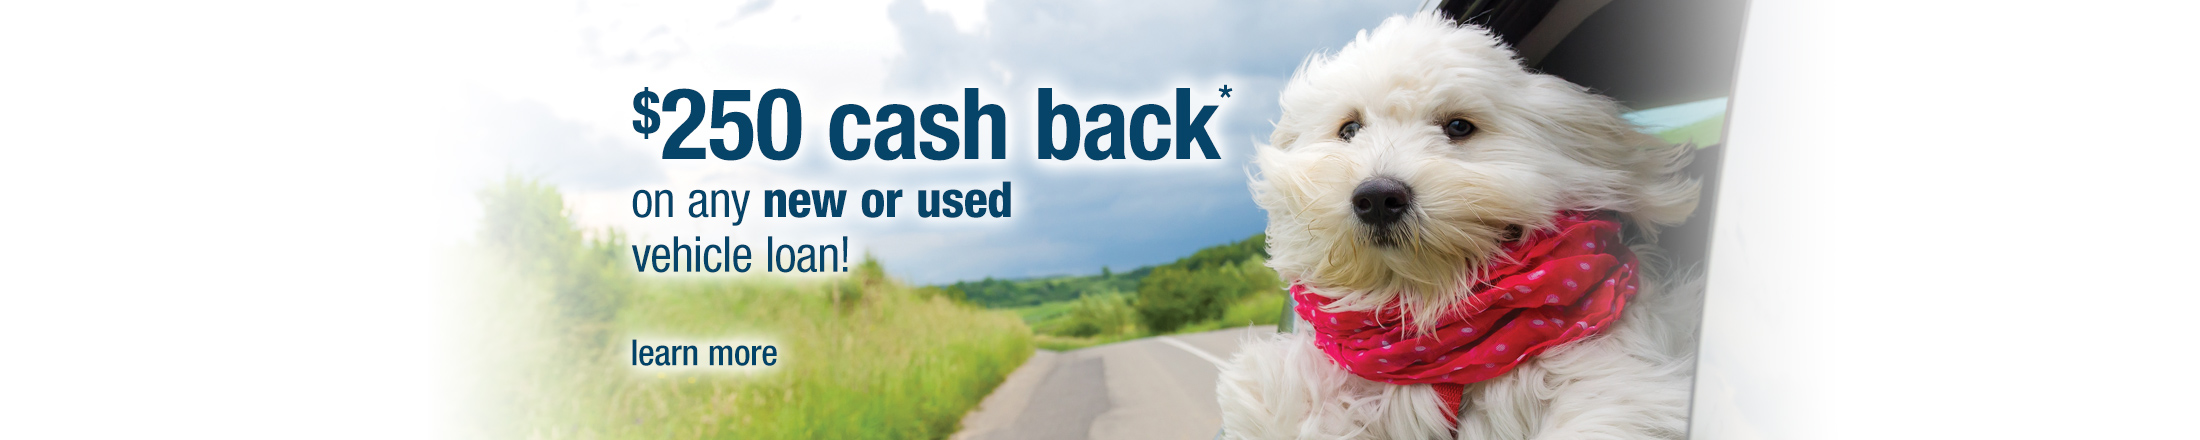 $250 cash back auto loan special